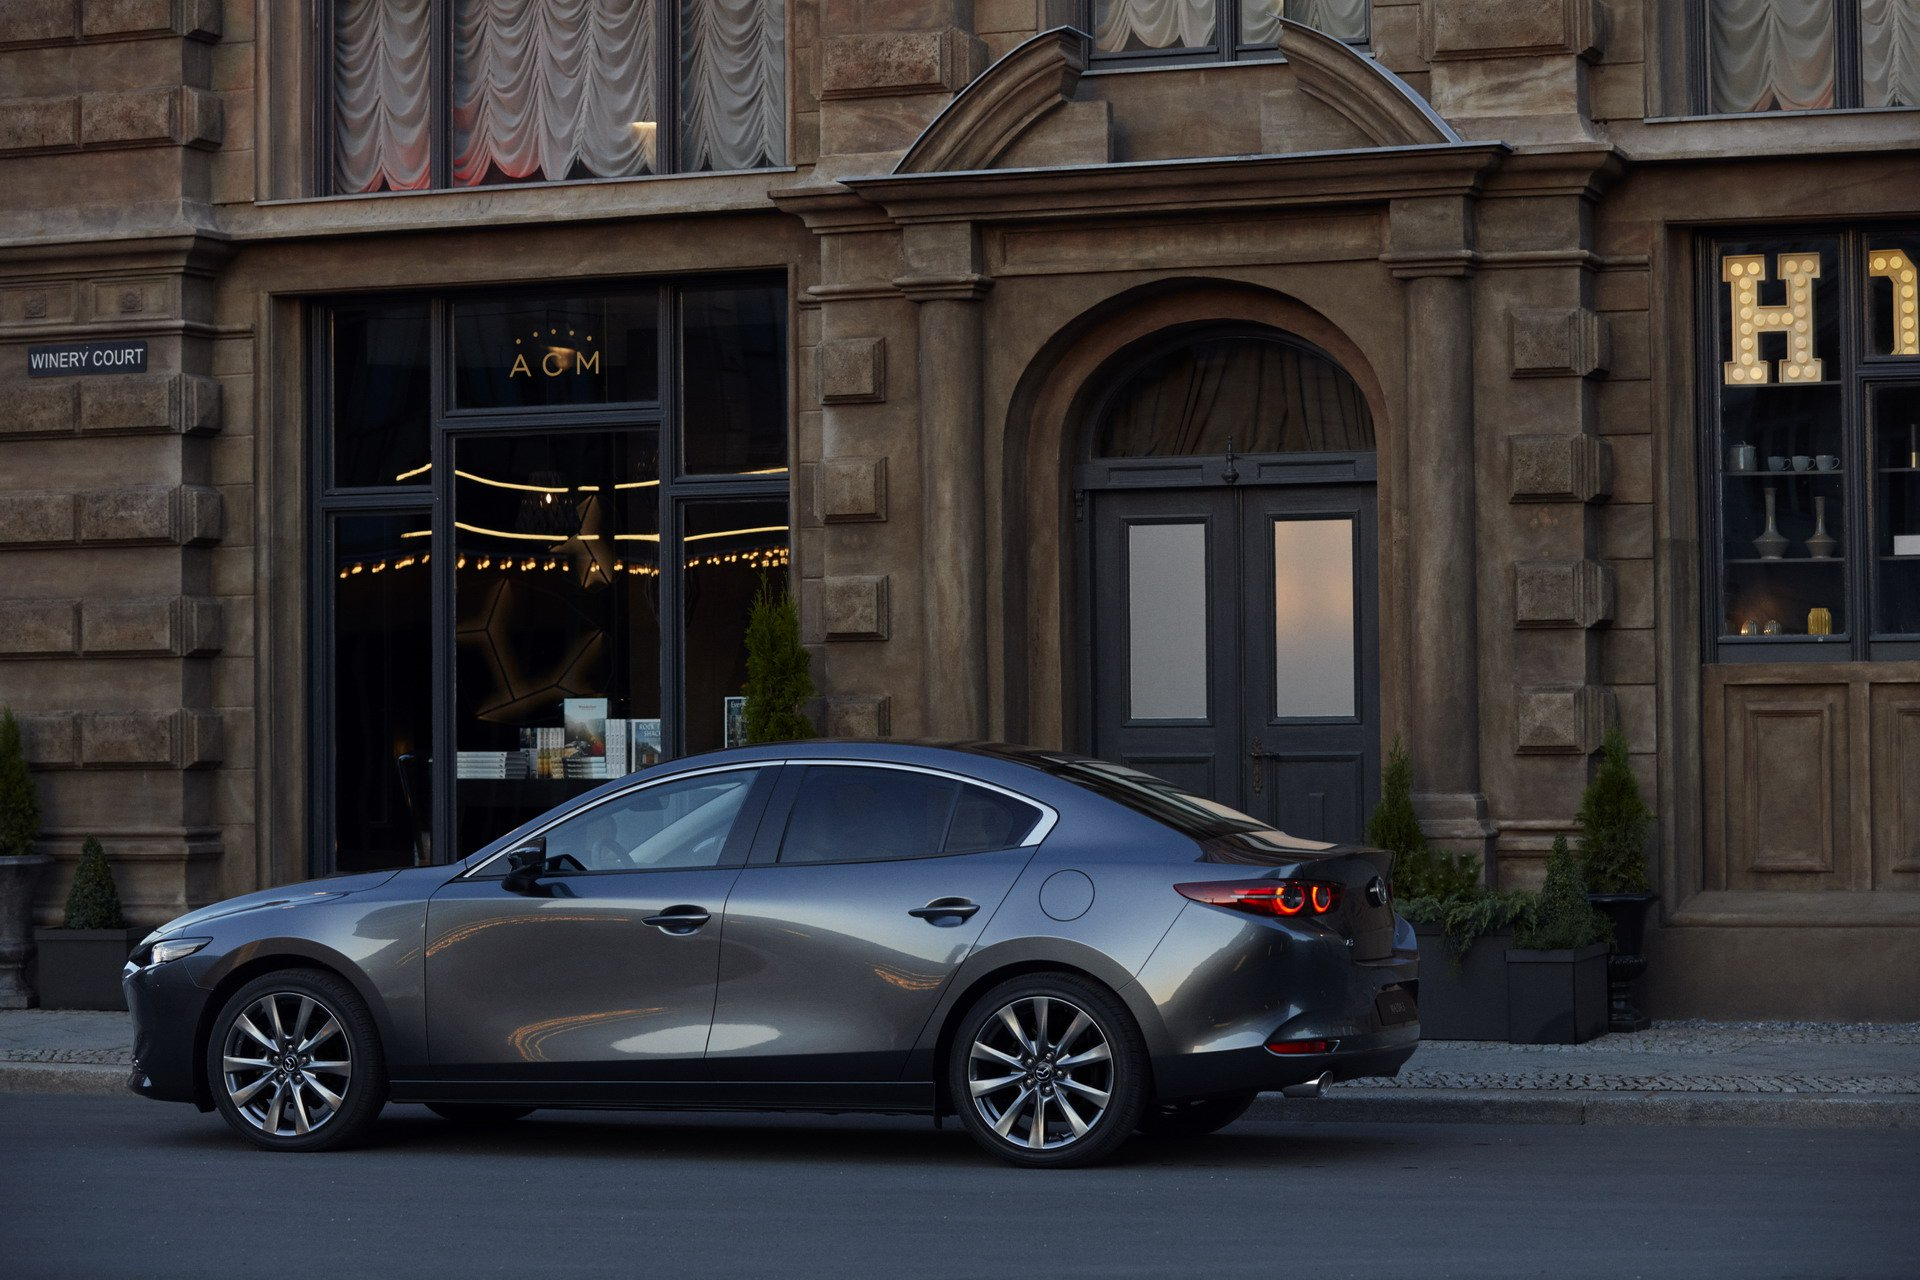 Mazda3 Hatchback and Mazda3 sedan 2019 (19)